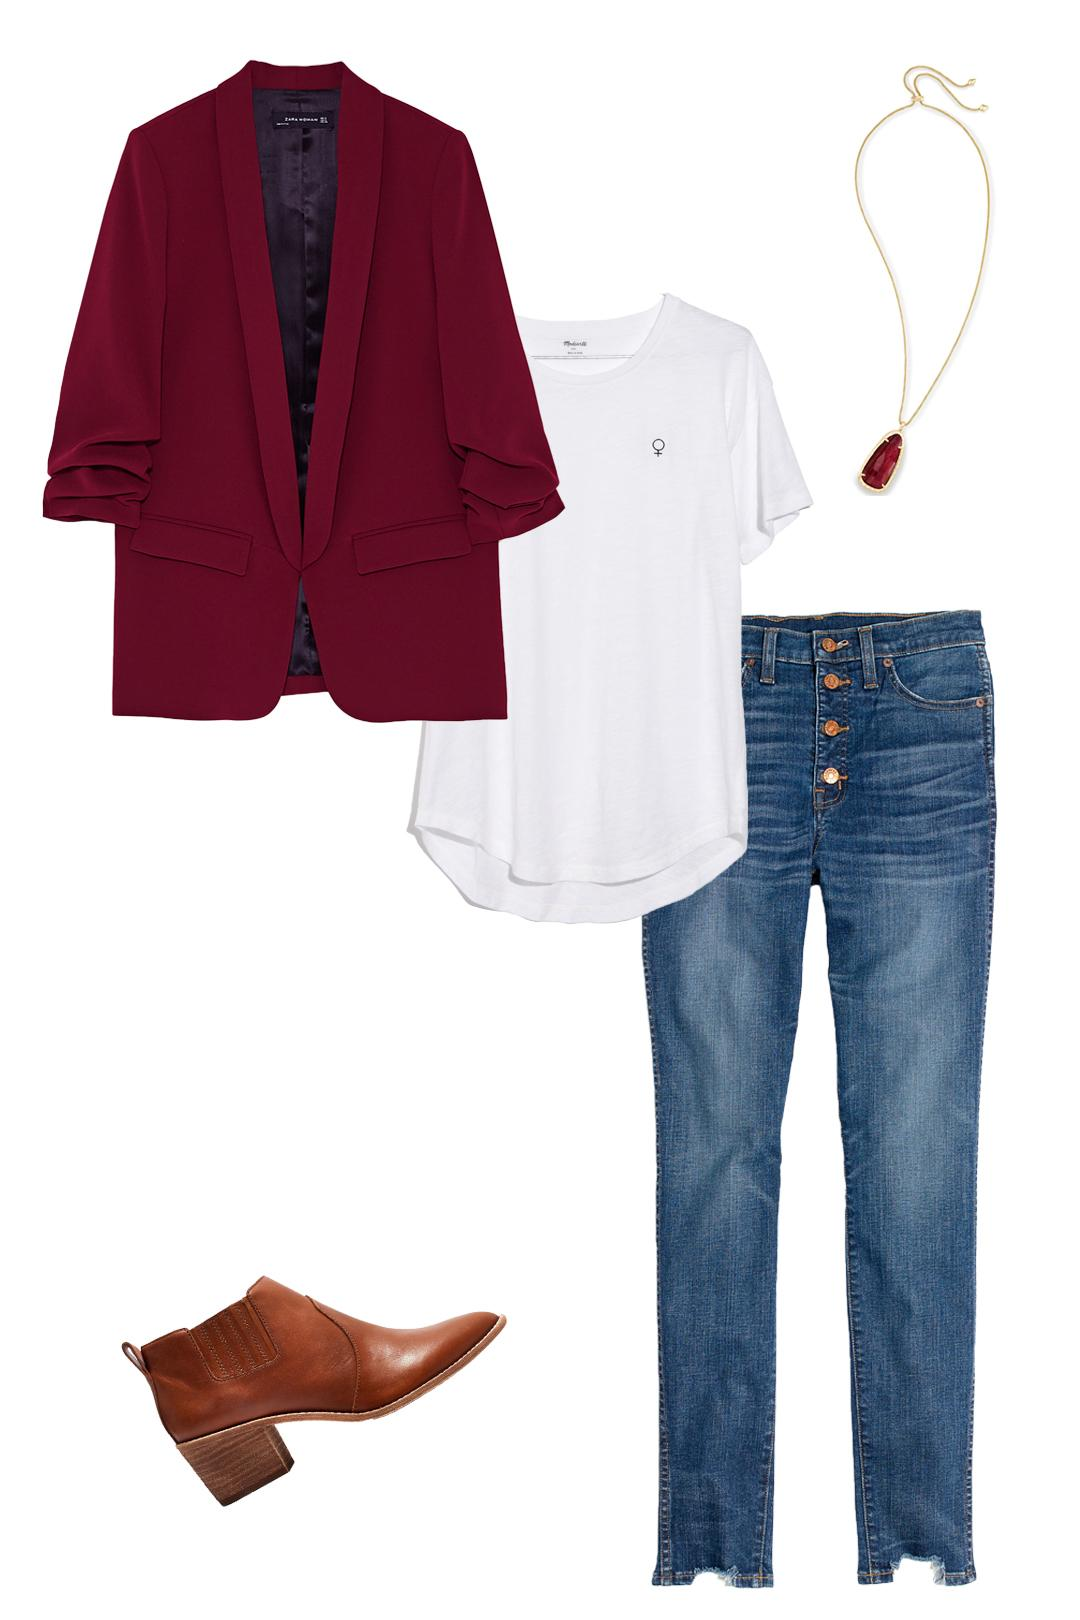 Fall Style Essentials That Stand The Test Of Time Economy Of Style